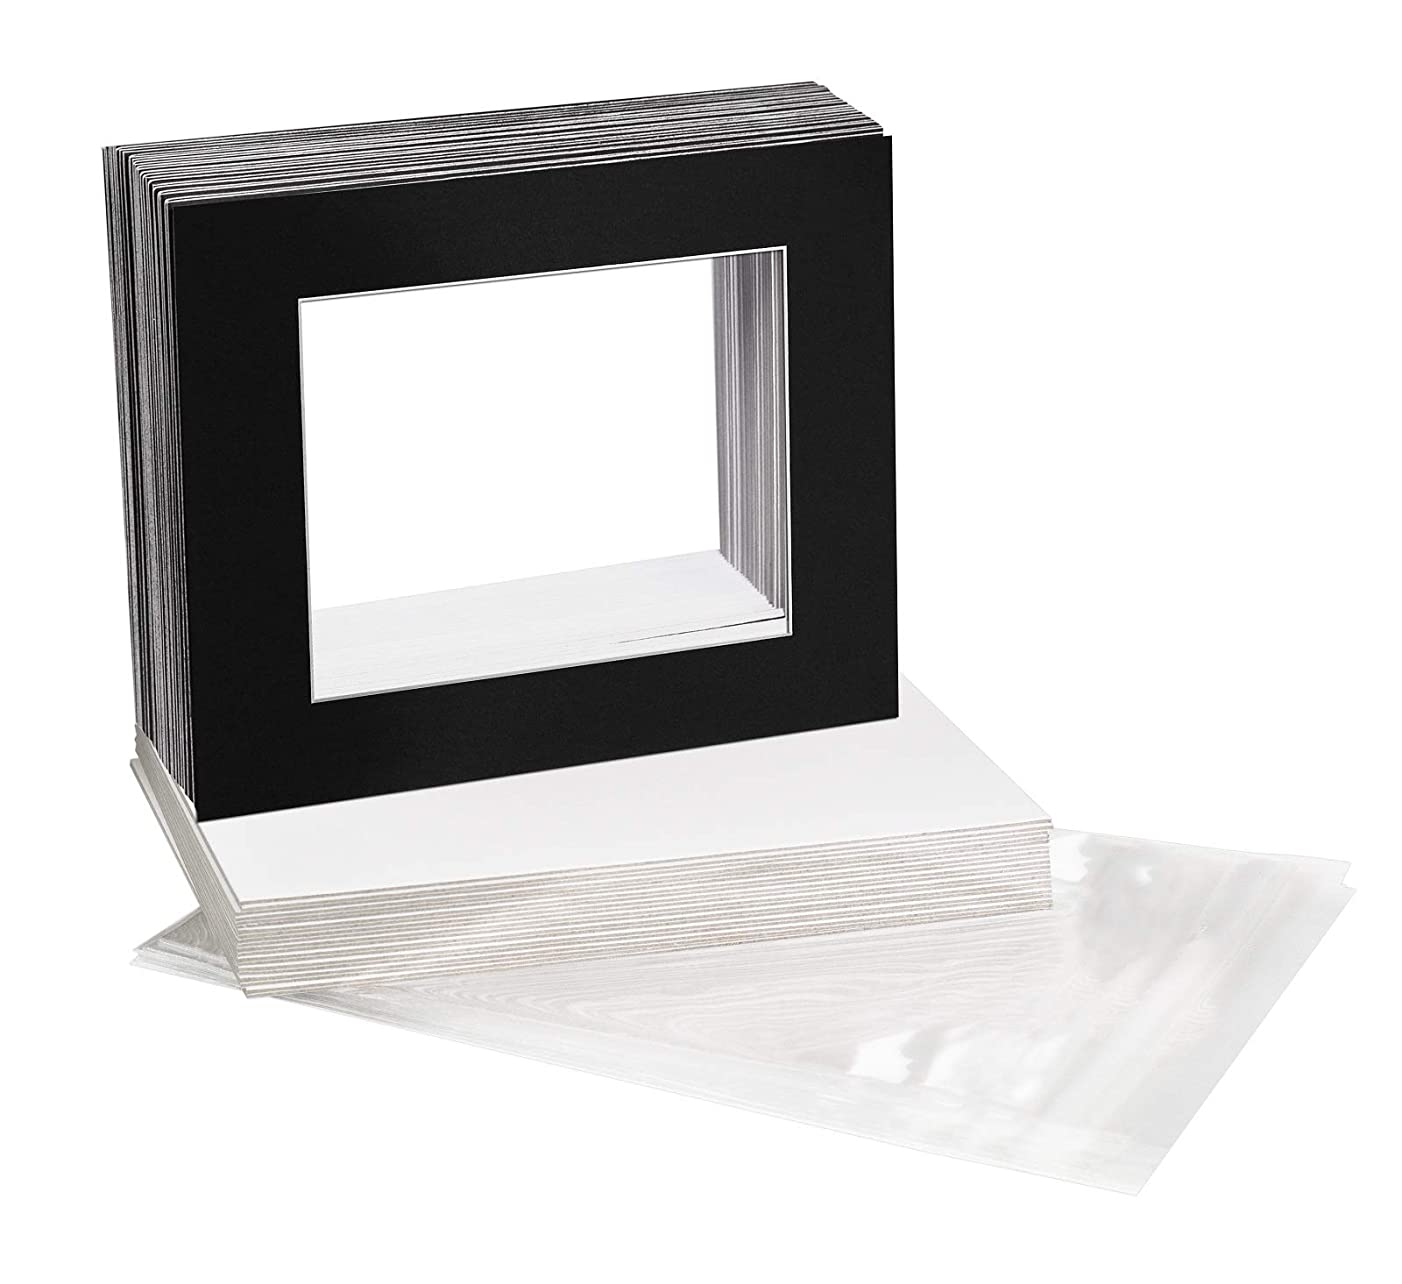 Golden State Art, Pack of 25, 16x20 Black Picture Mats Mattes with White Core Bevel Cut for 11x14 Photo + Backing + Bags